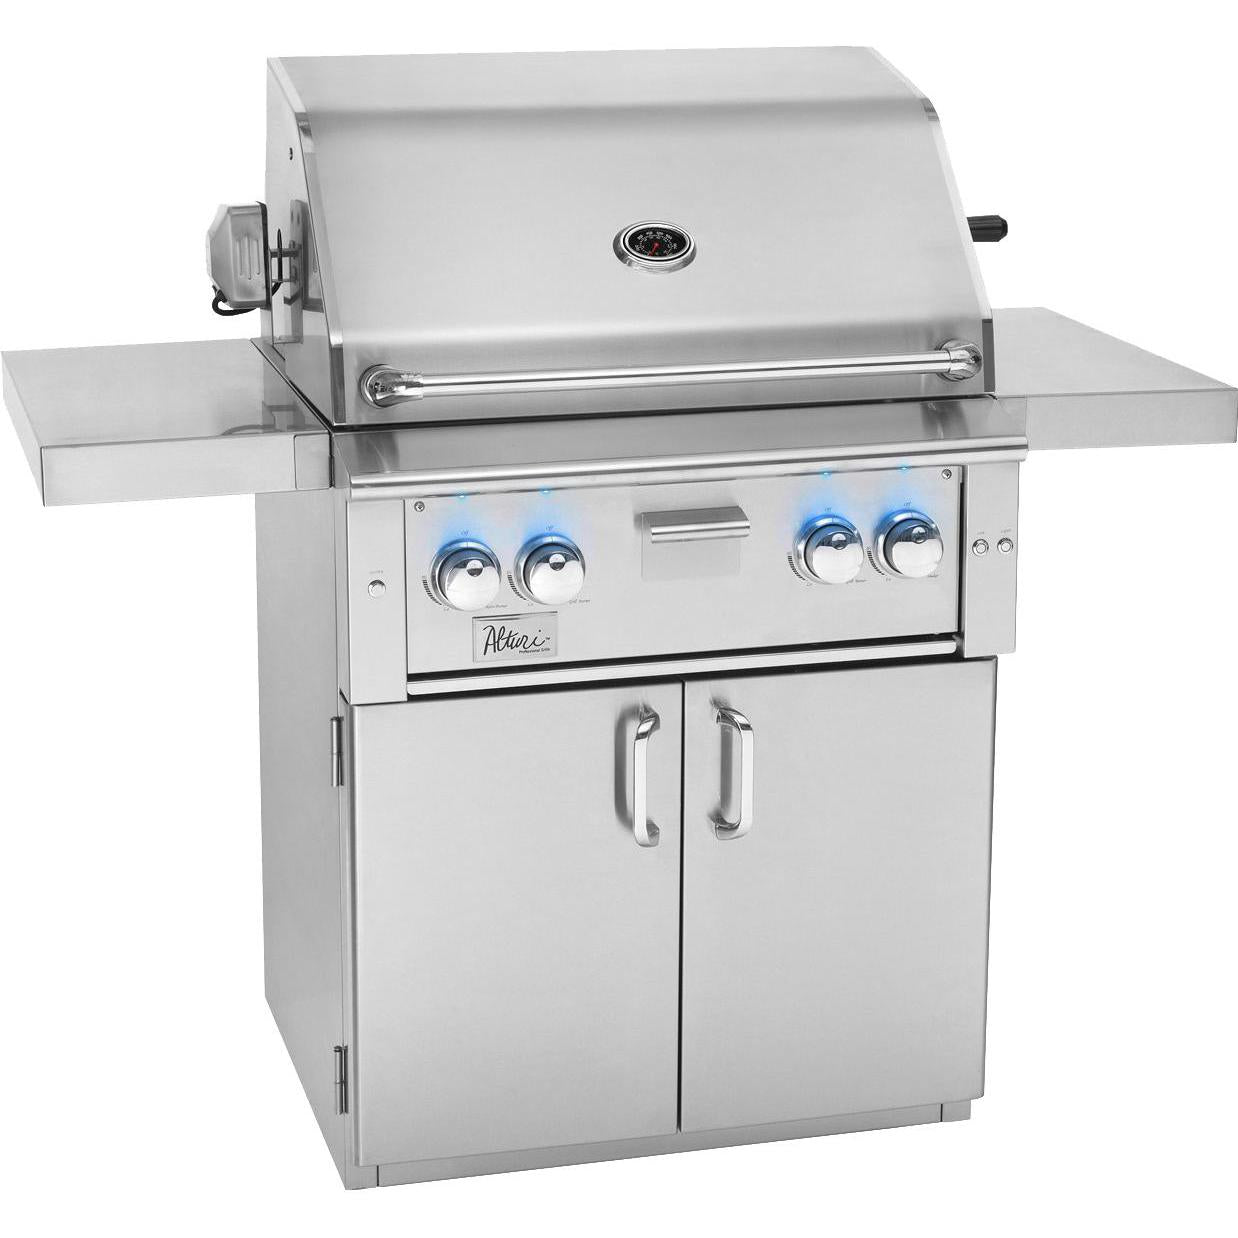 Summerset Alturi 30-Inch 2-Burner Freestanding Gas Grill With Stainless Steel Burners & Rotisserie - ALT30-LP